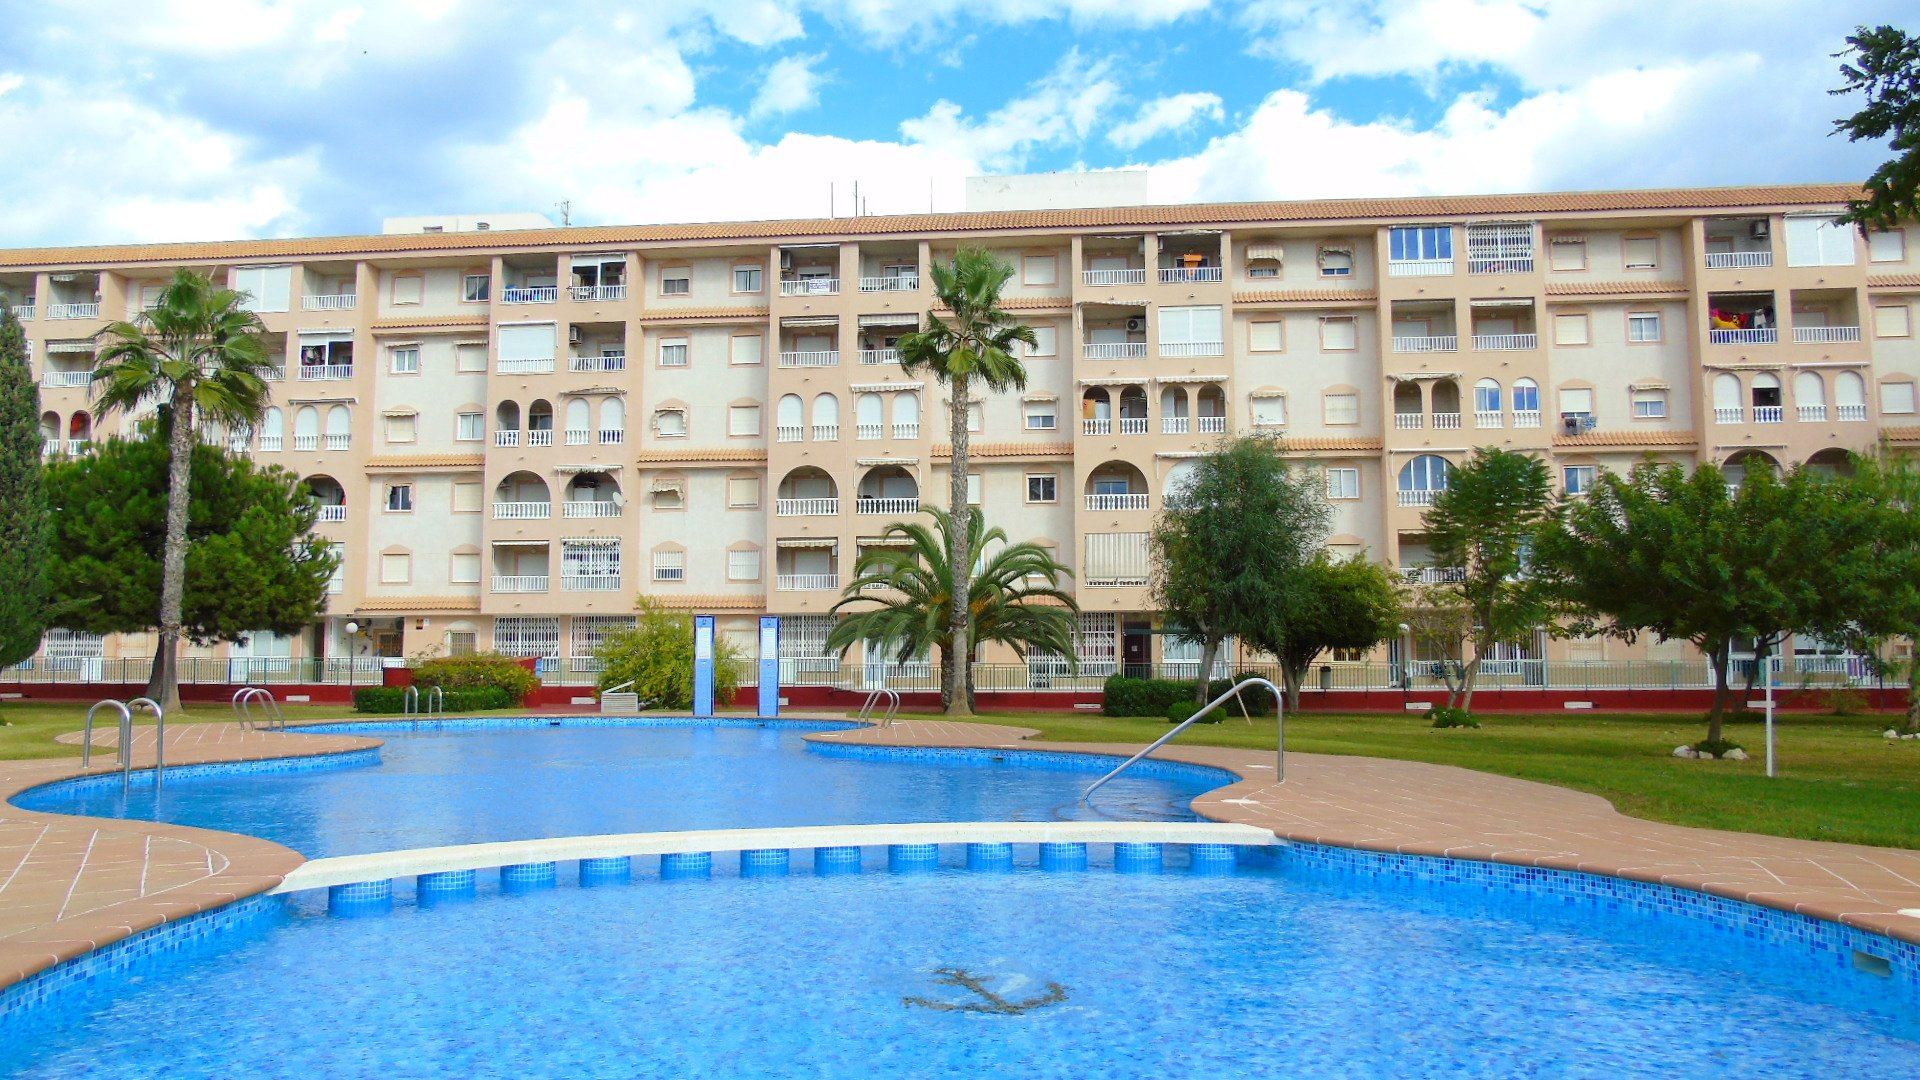 Apartment for Long Term Rental in Torrevieja, 2 bedrooms, 1 bathroom, communal swimming pool, fantastic view, pets allowed friendly